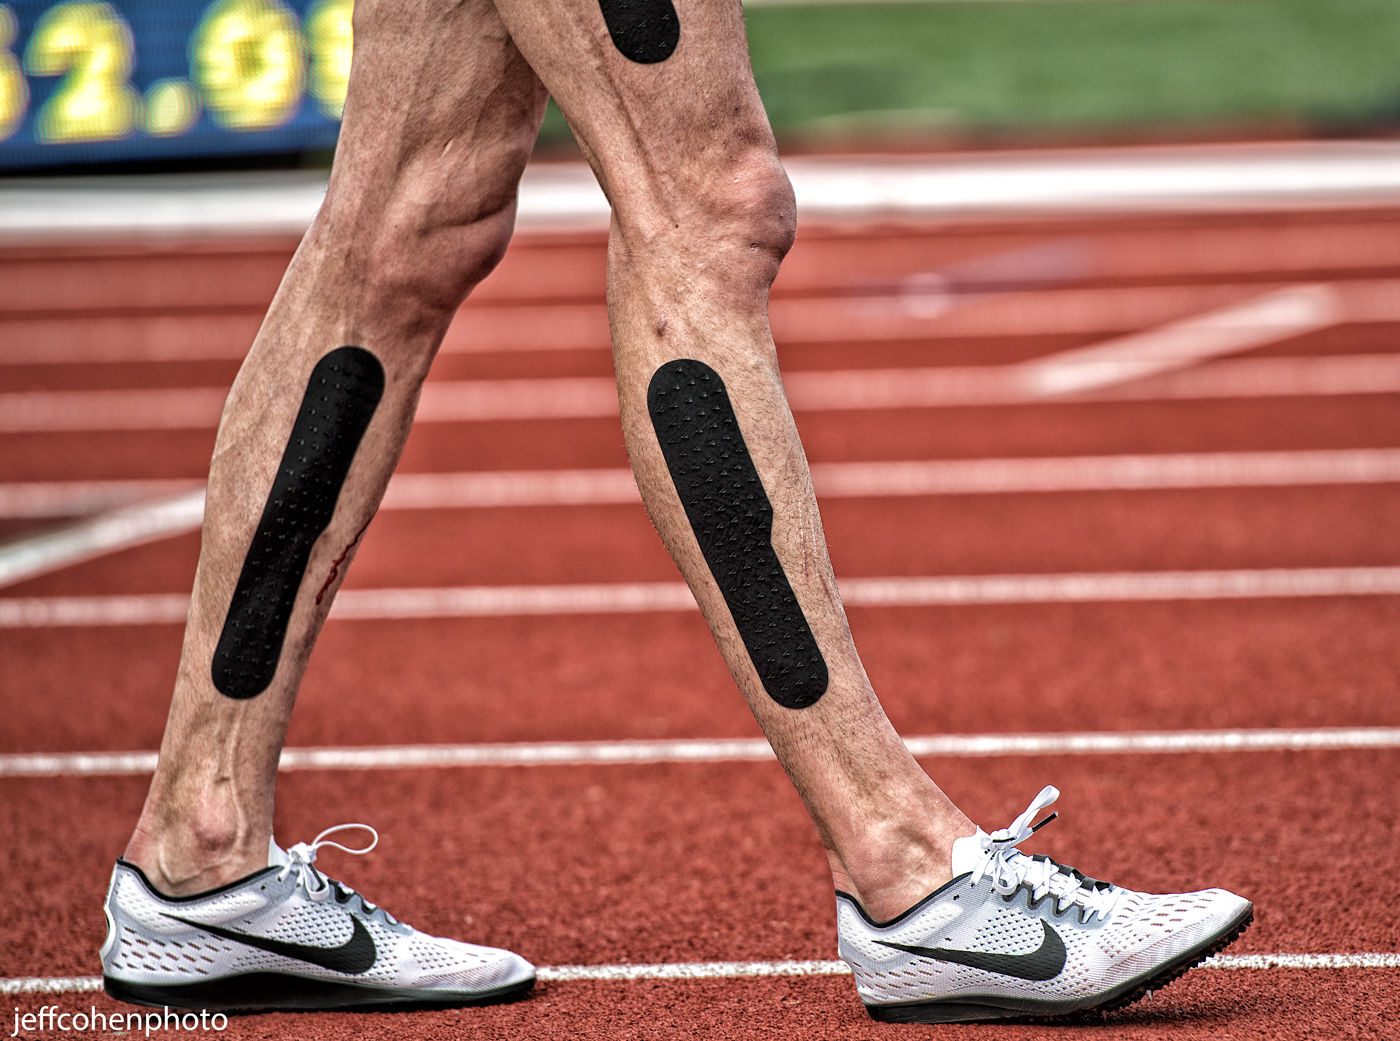 1r2016_oly_trials_day_8_rupp_legs_jeff_cohen_photo_26407_web.jpg